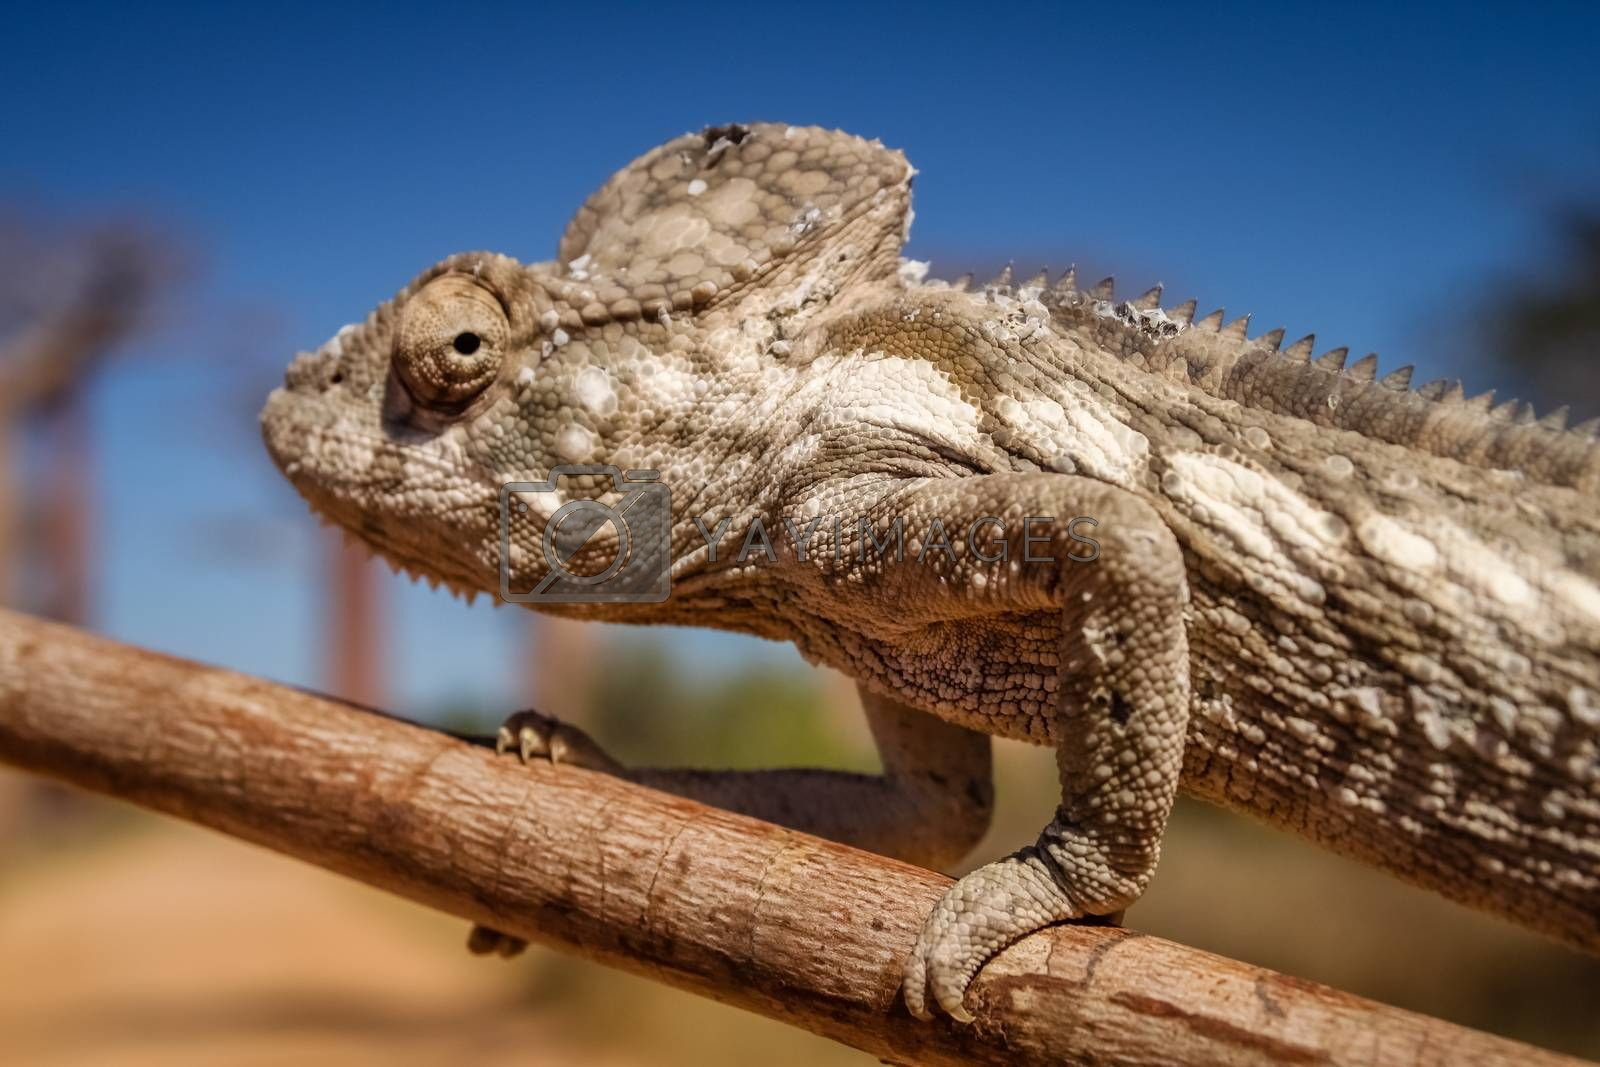 Royalty free image of Chameleon and baobabs by pawopa3336